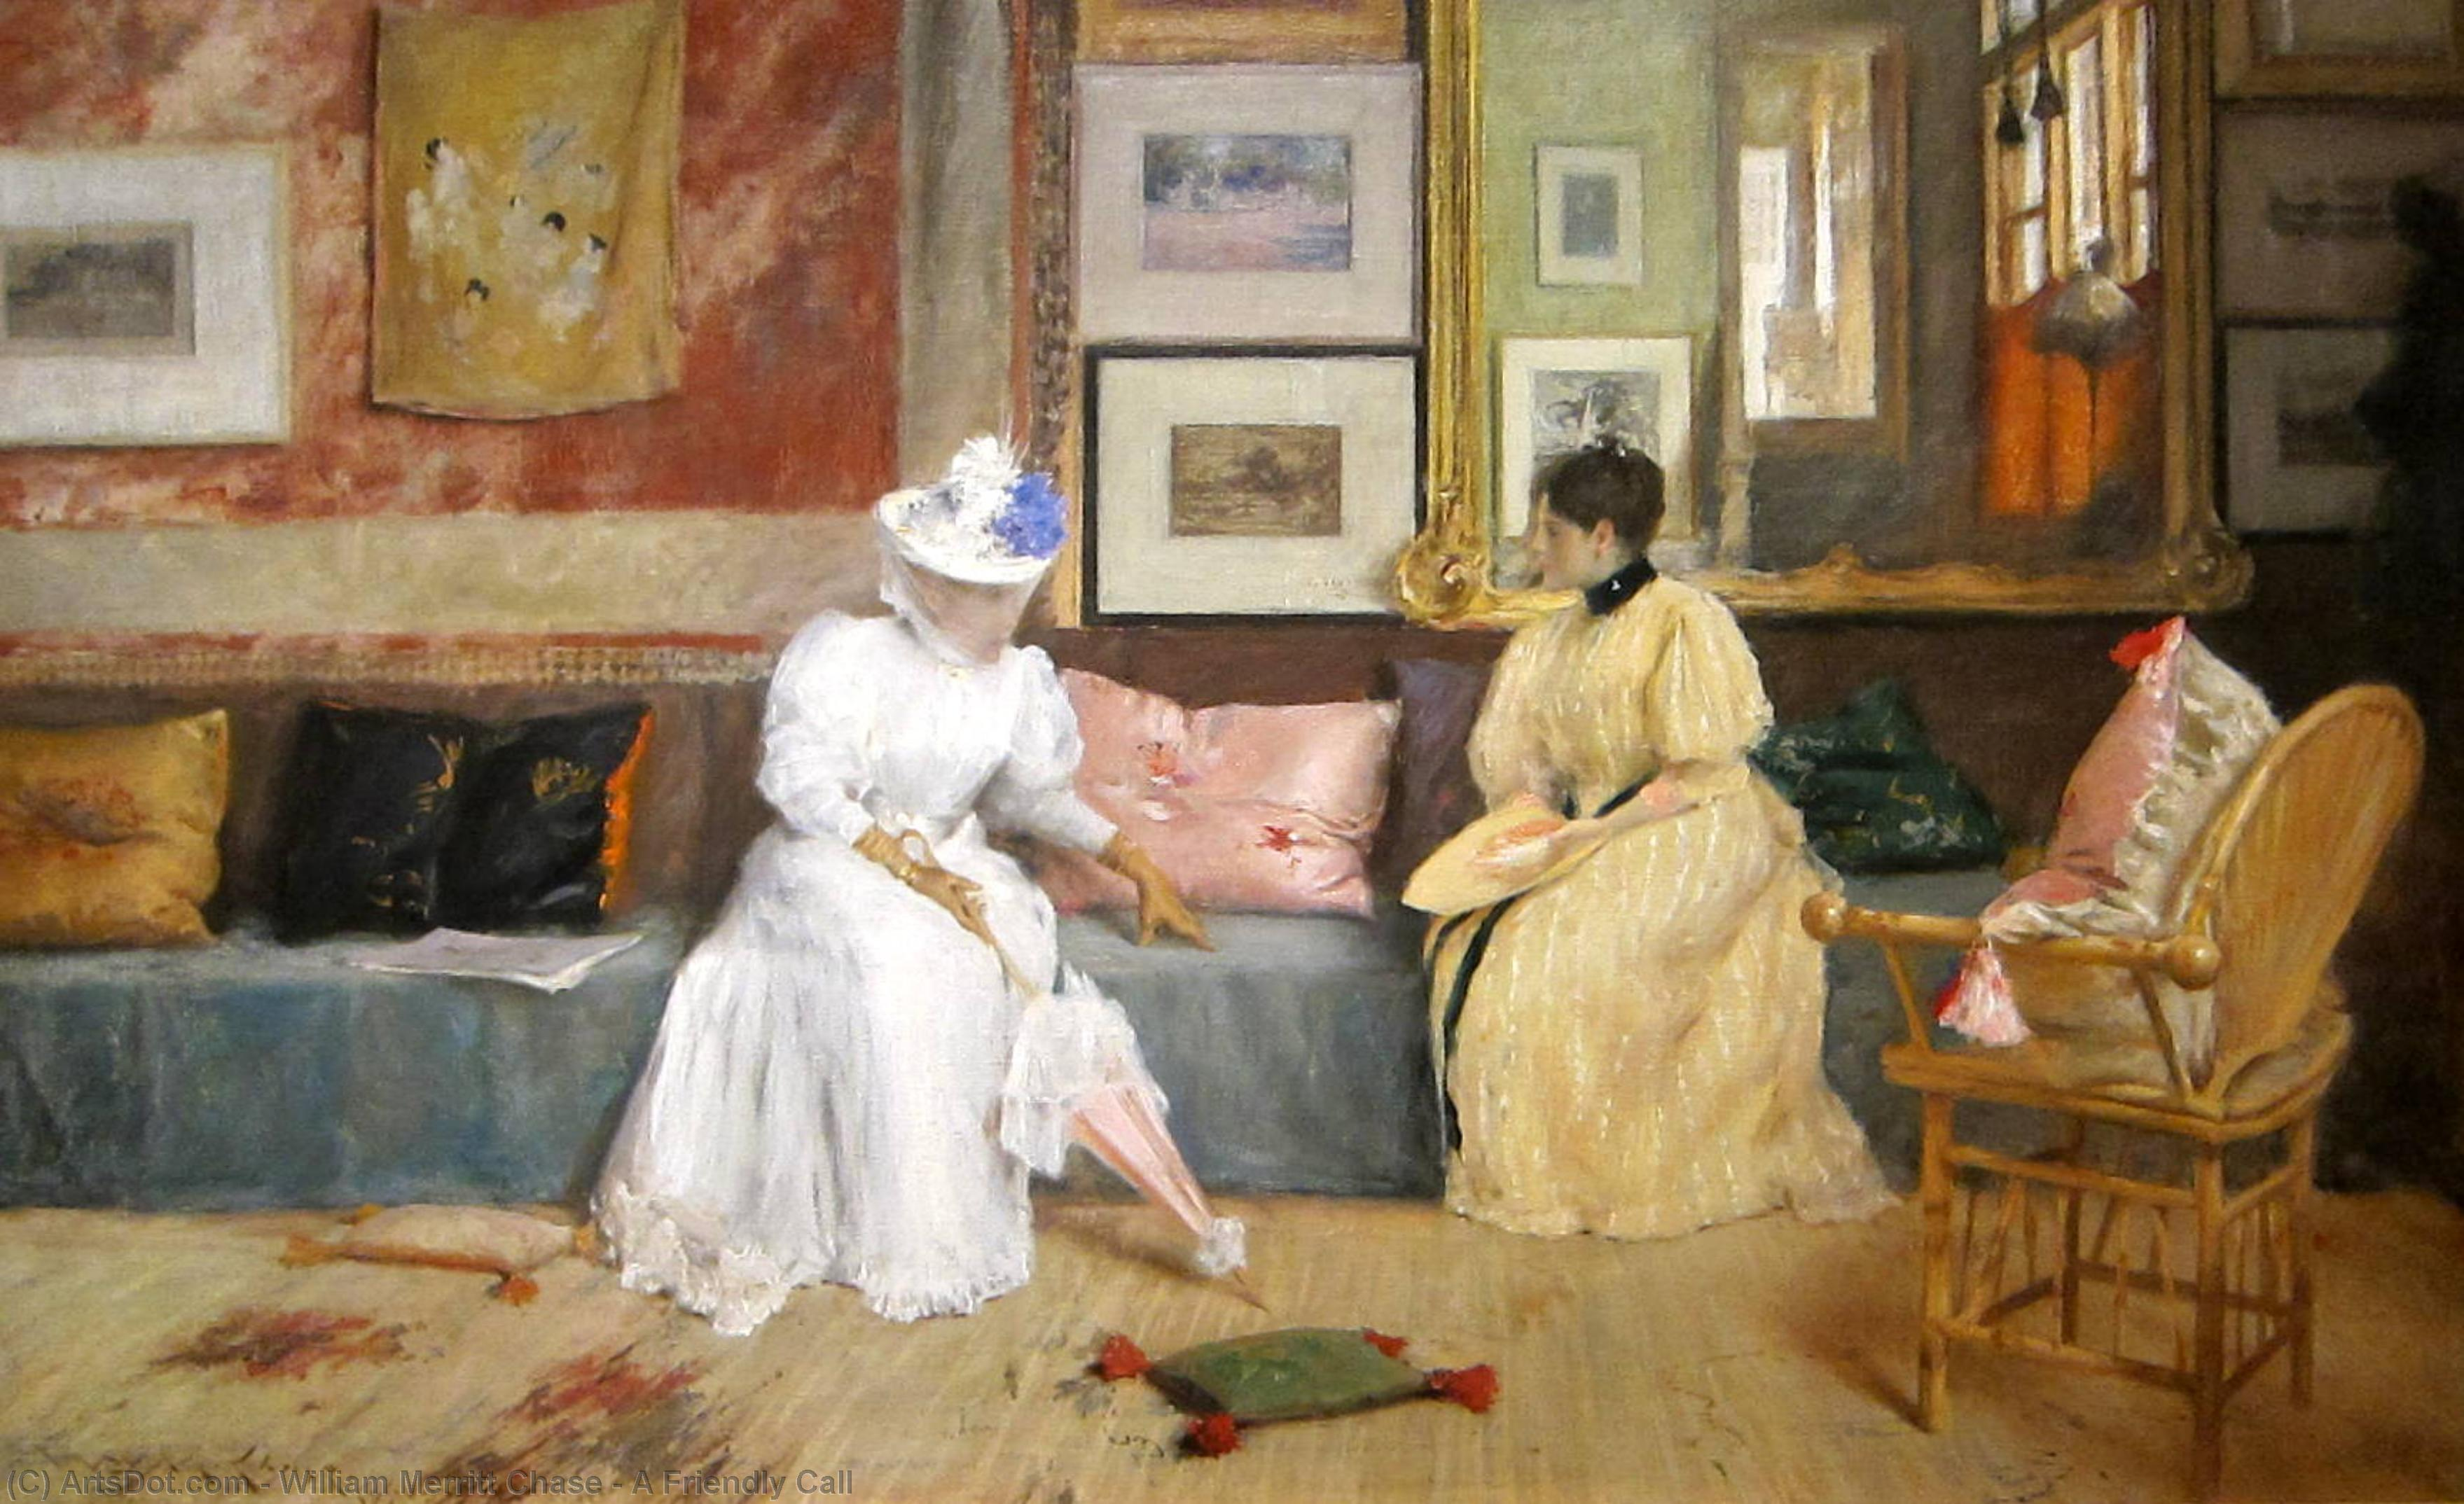 Wikioo.org - The Encyclopedia of Fine Arts - Painting, Artwork by William Merritt Chase - A Friendly Call